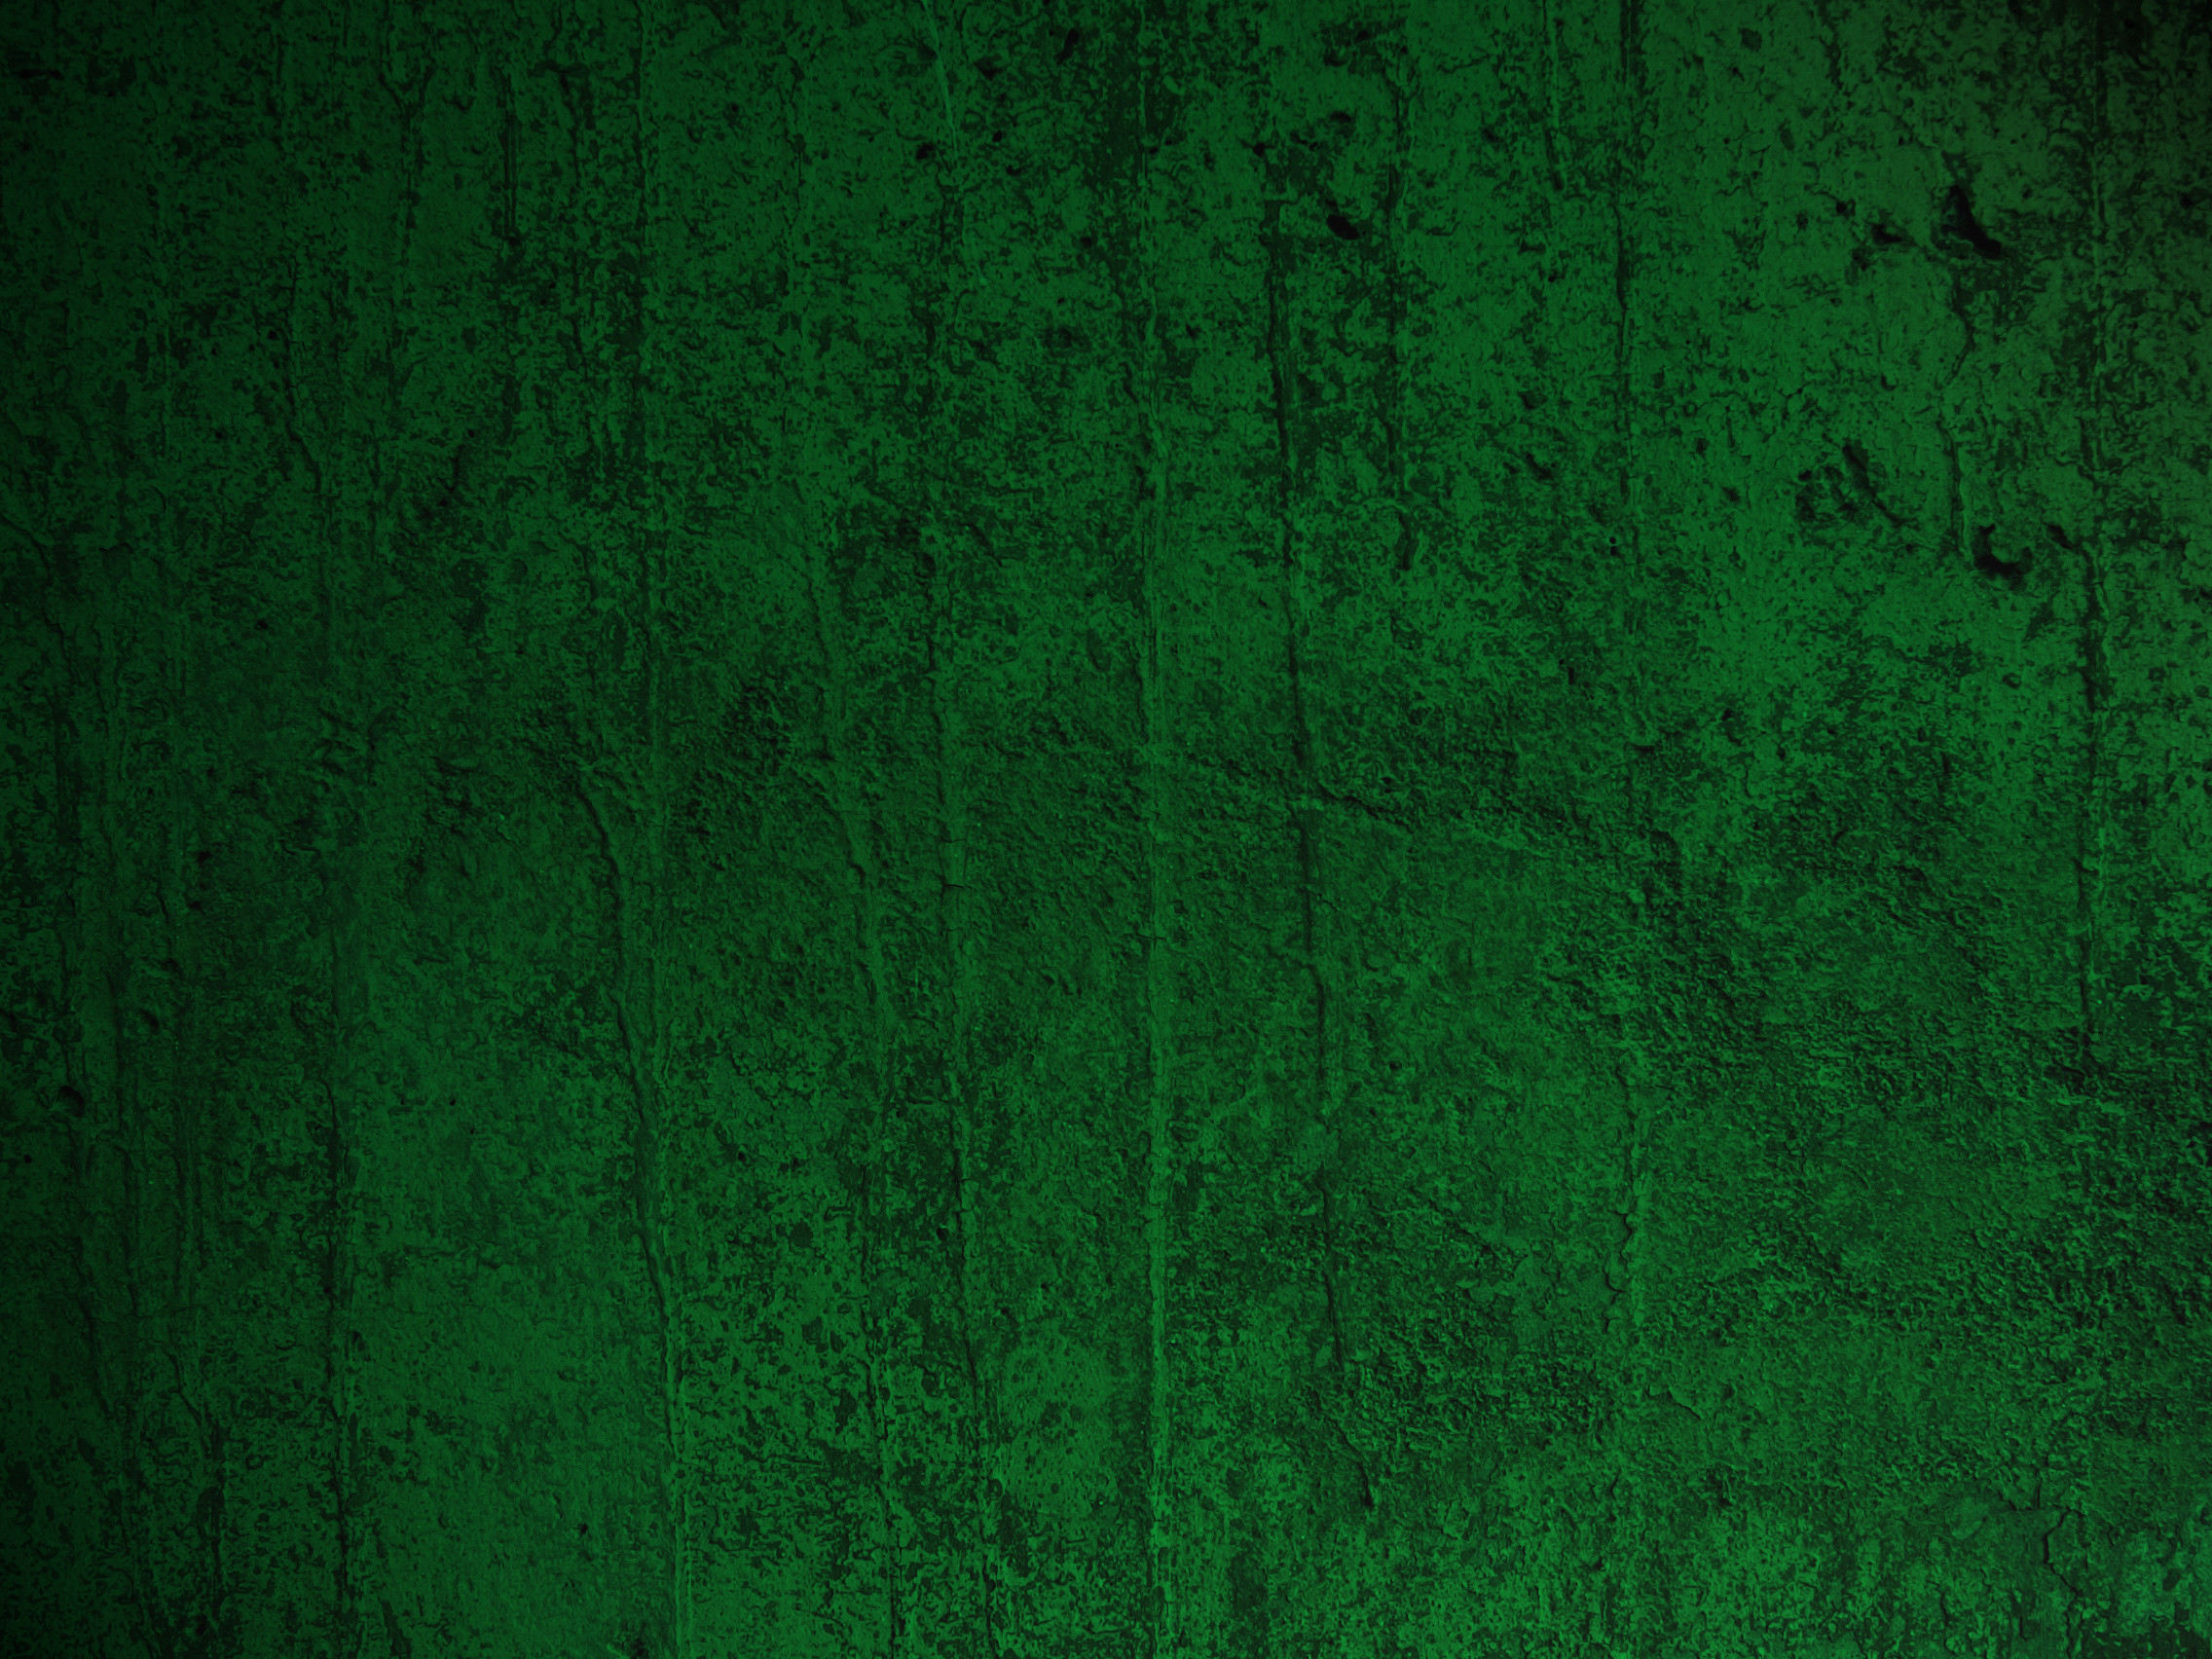 2272x1704 Olive Green Design Backgrounds 065 Dekstop HD Wallpapers wfz